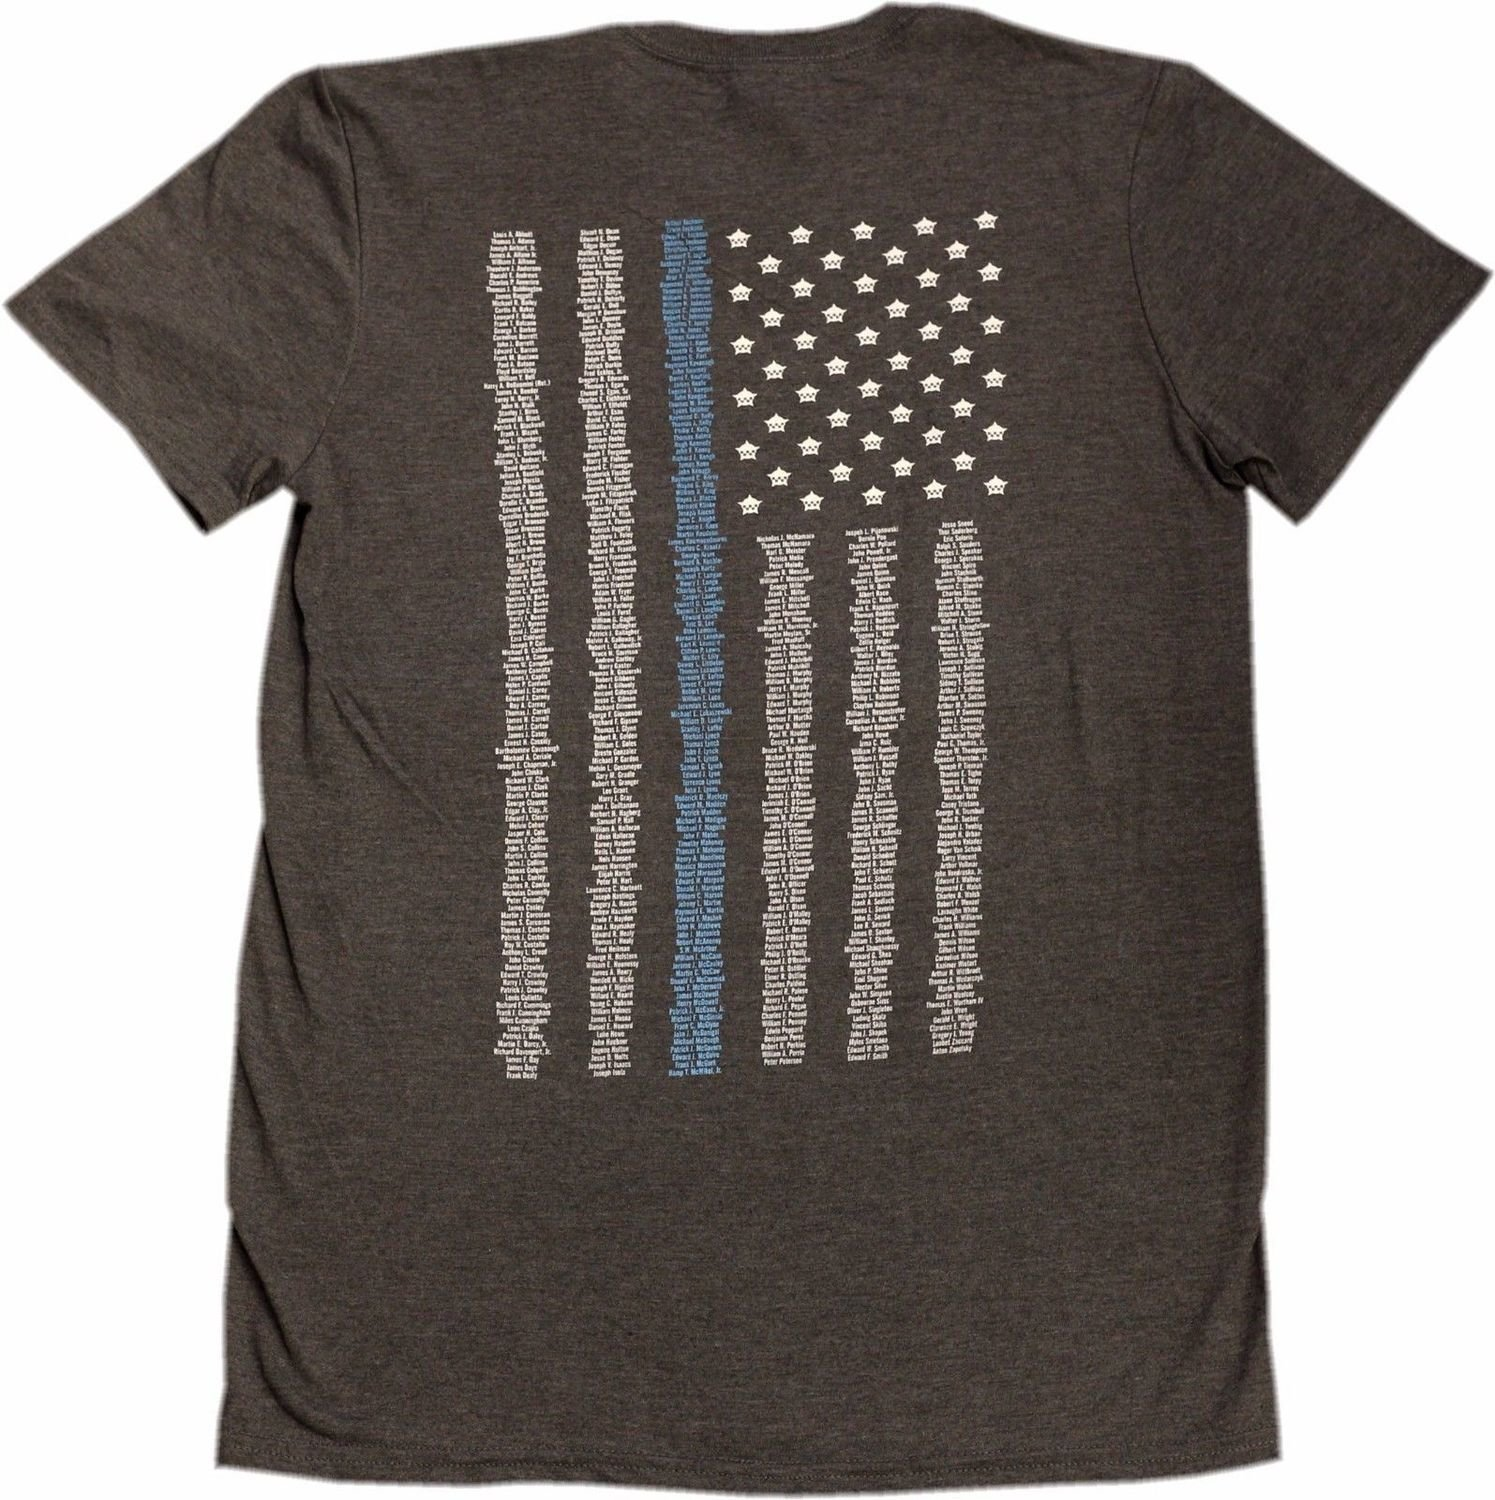 Chicago Police Memorial Foundation Name T-Shirt 2017